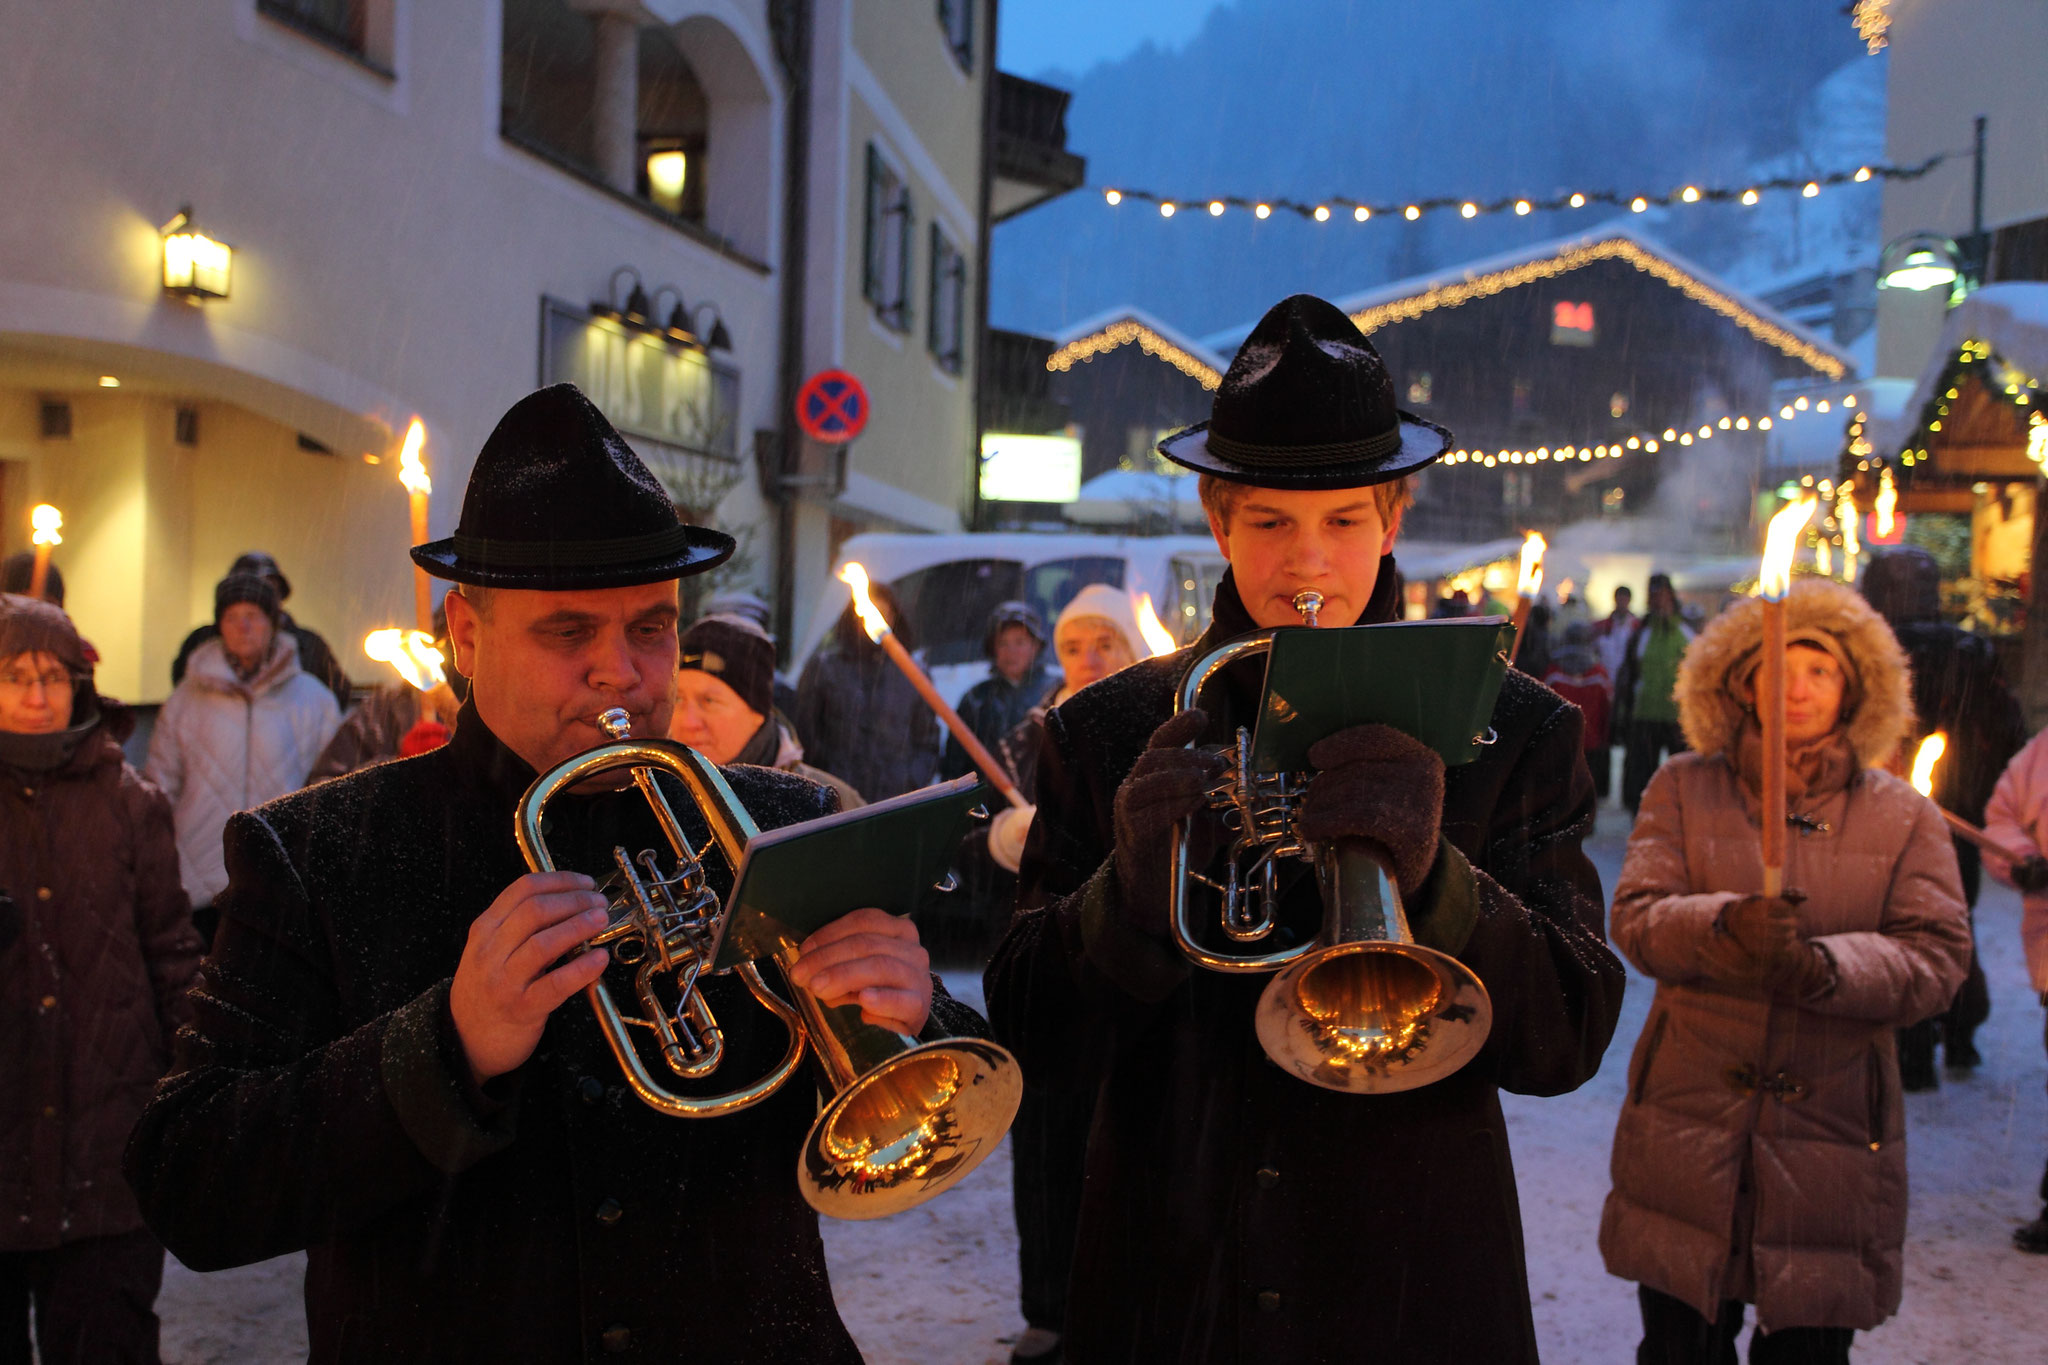 Musicians at the torchlight hikes in Grossarl